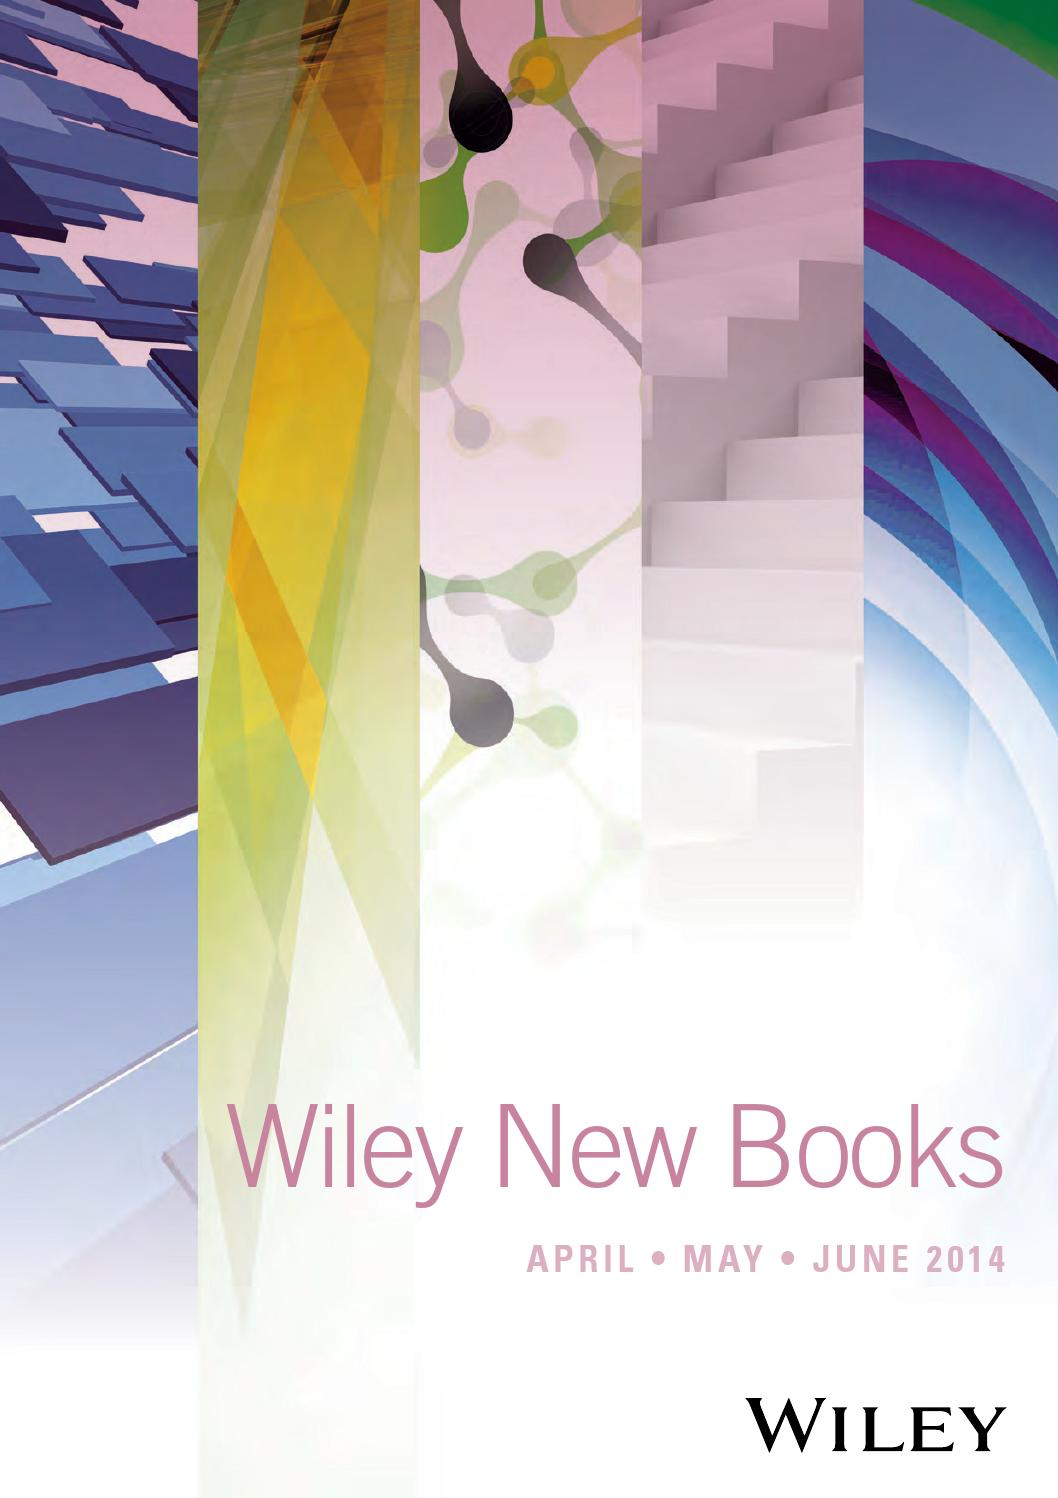 Design Construction Et Associés Granville wiley new books april - june 2014wiley india - issuu